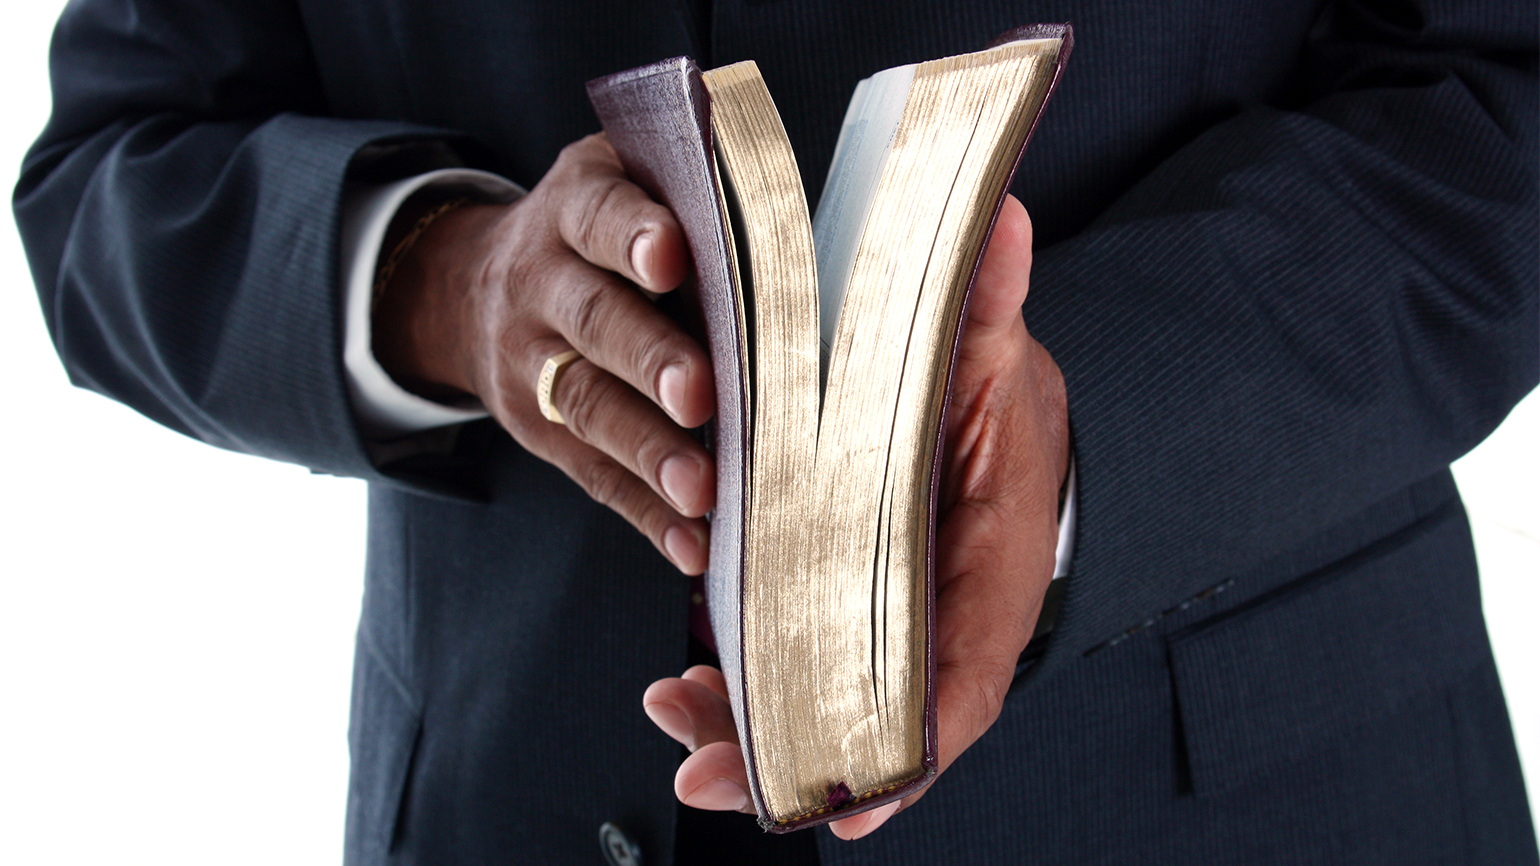 Pastor holding a bible